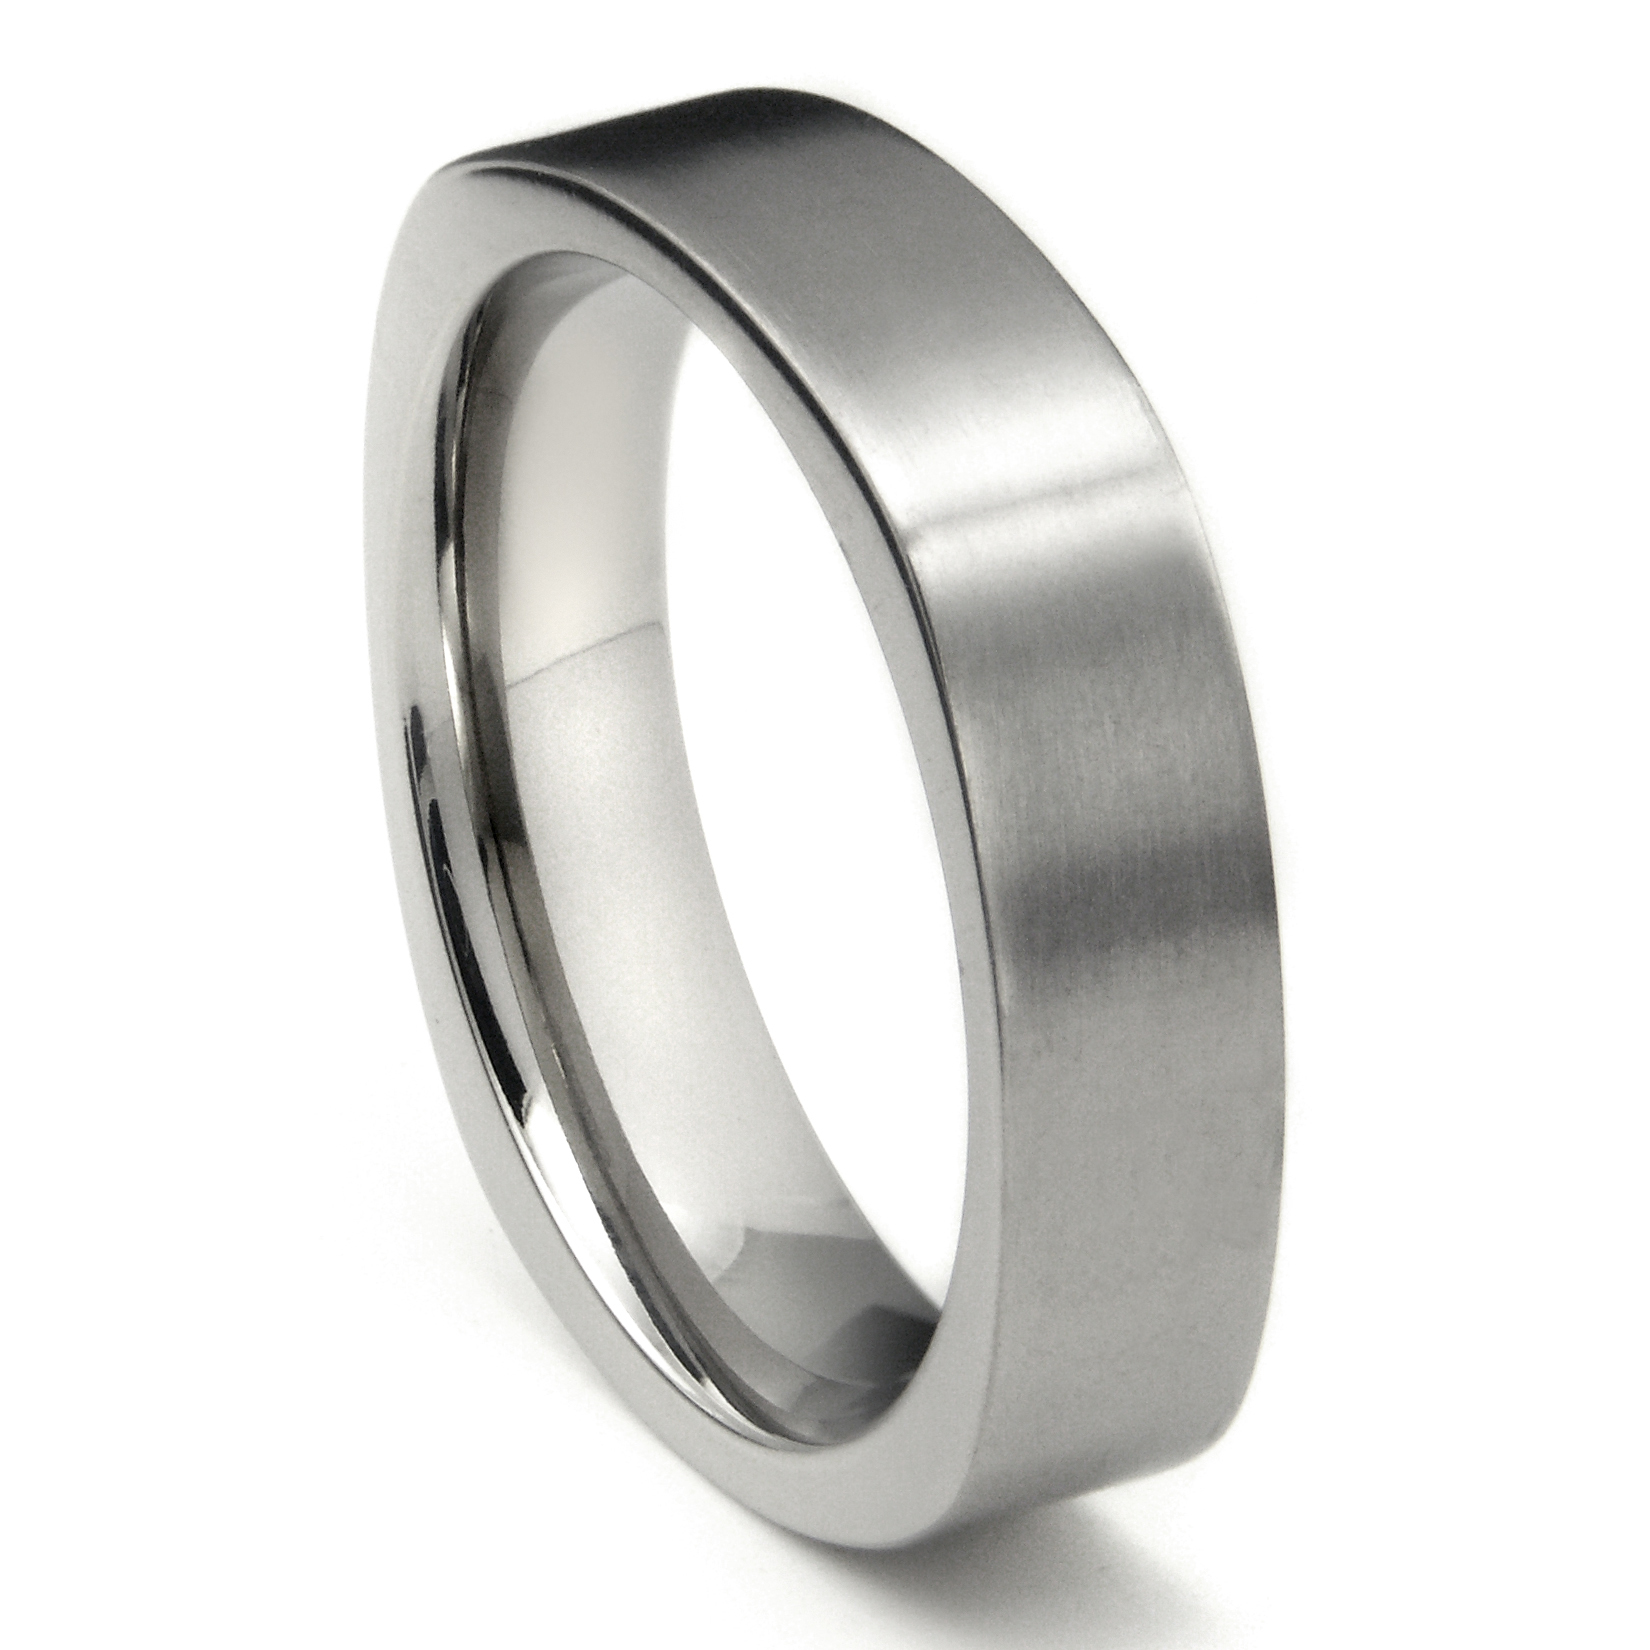 image bands comfort band mens finish wedding carbide promise ring polished fit products silver unisex tungsten platinum